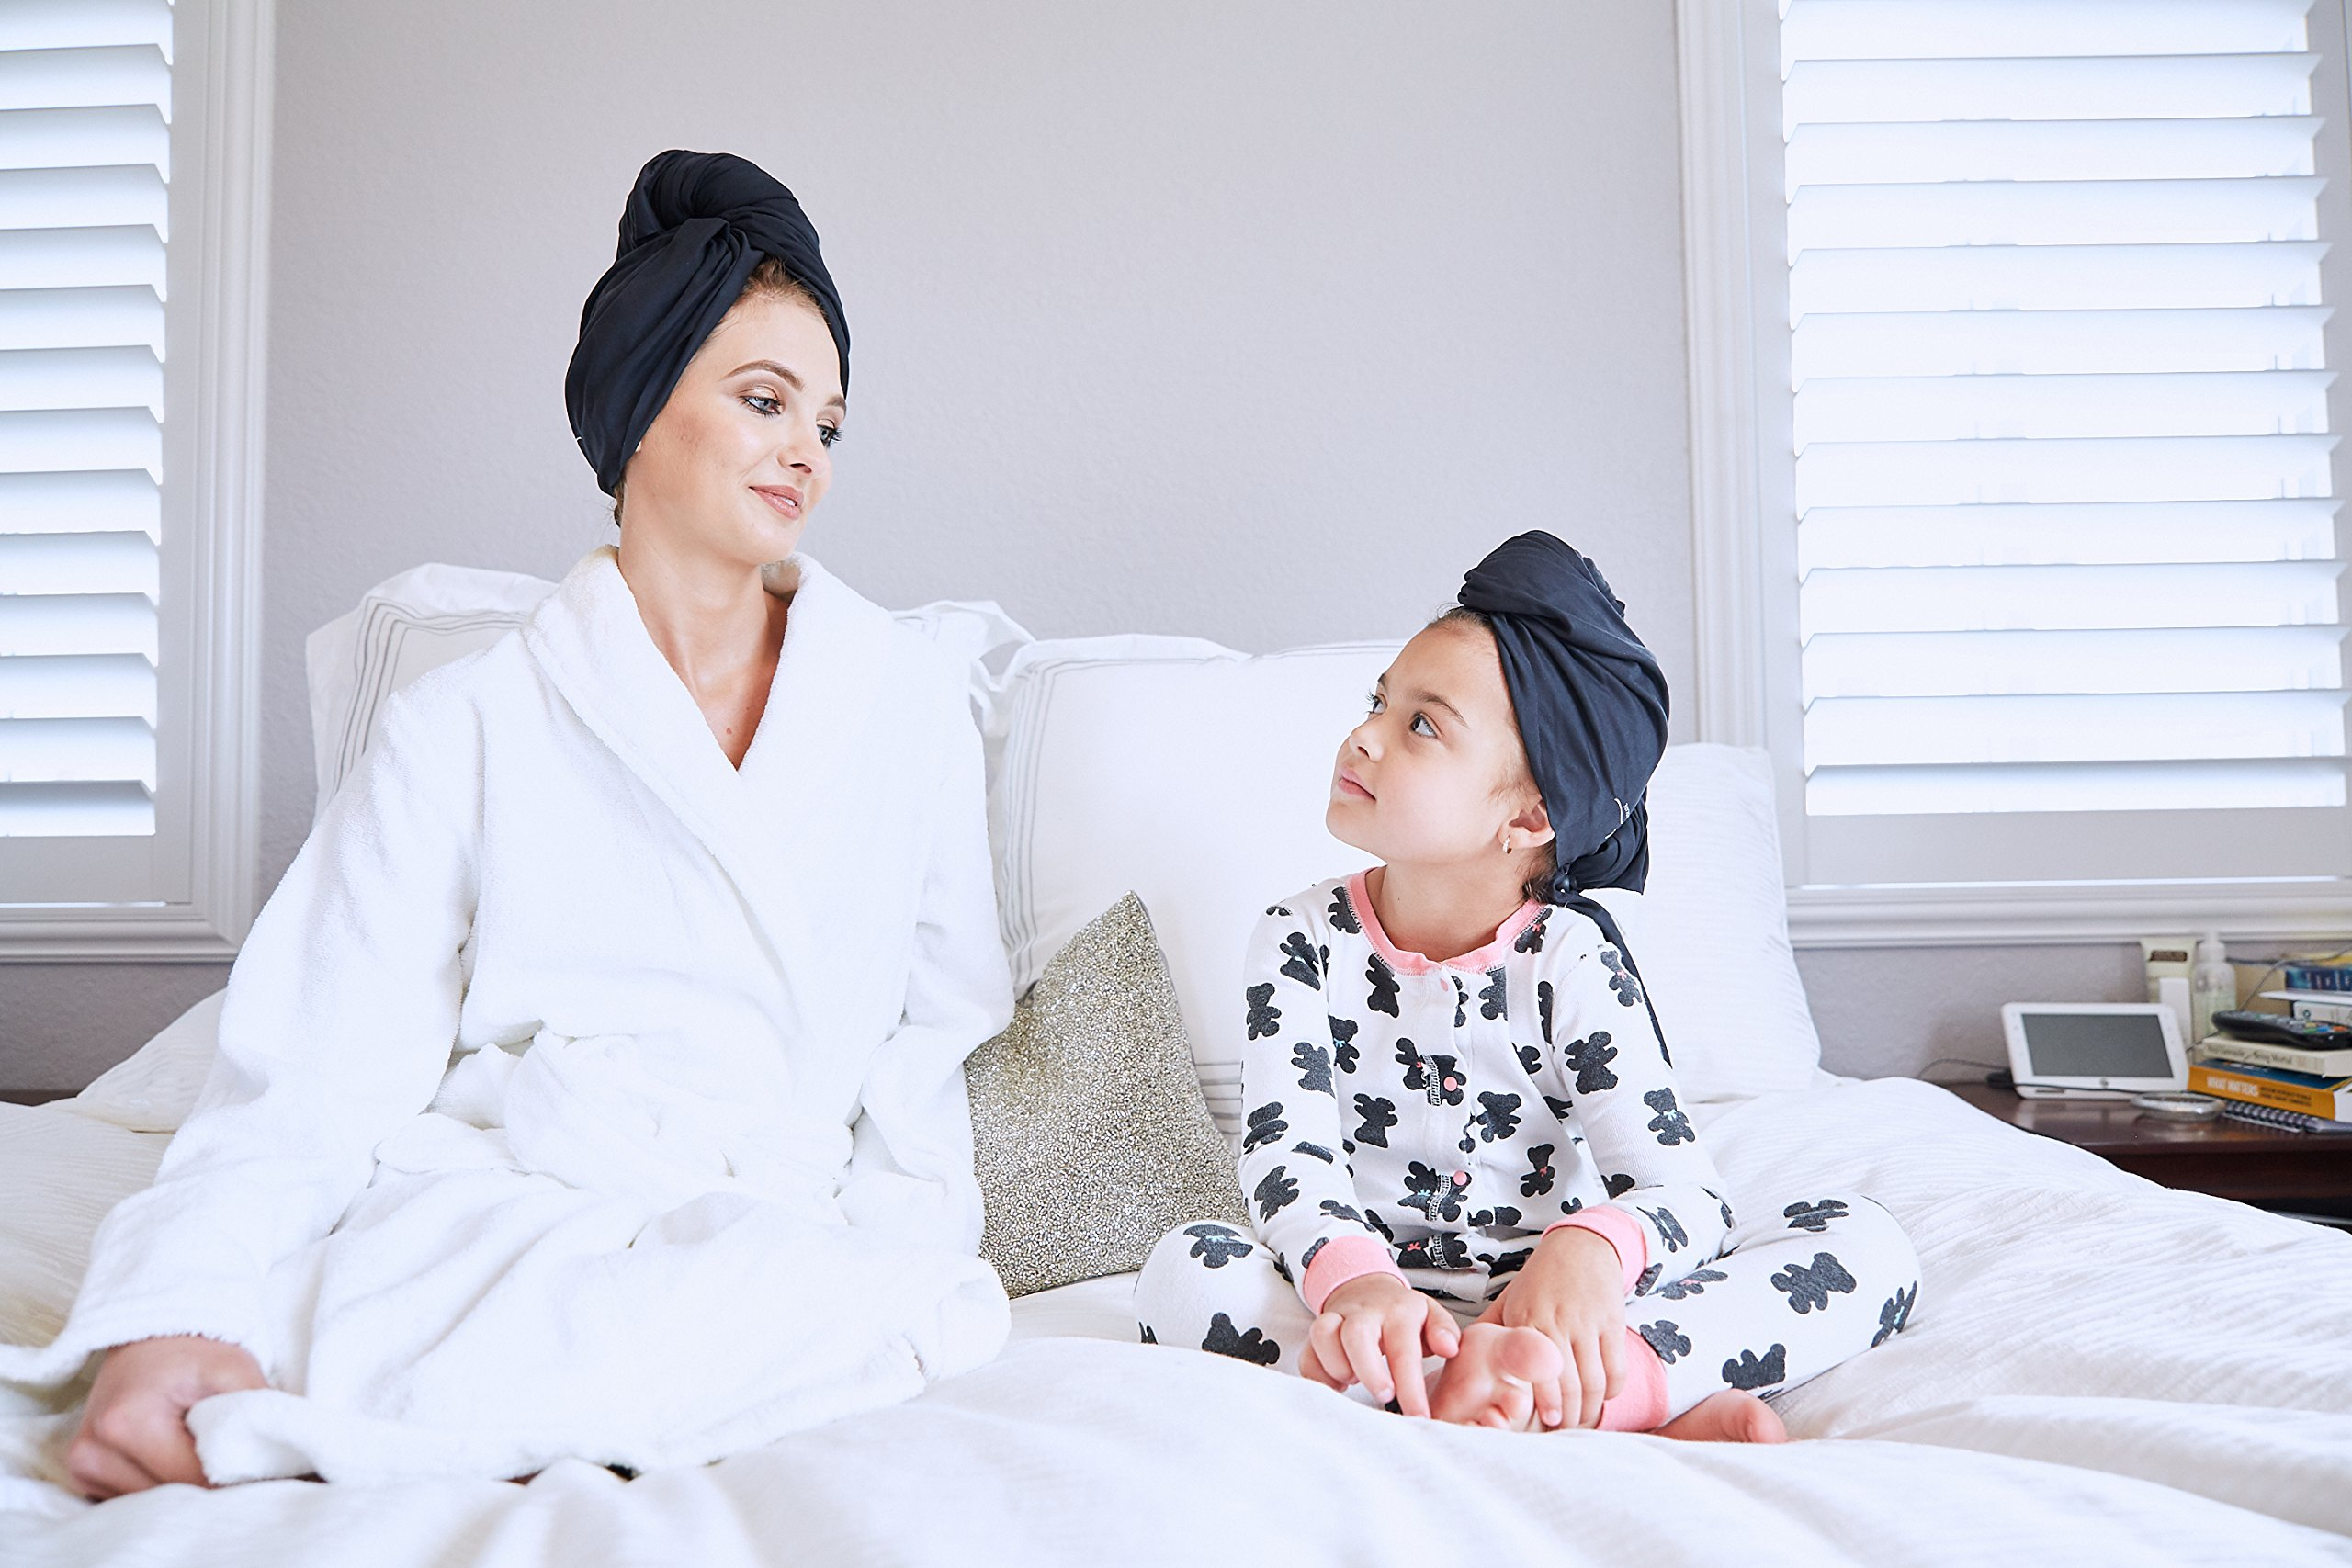 The Perfect Microfiber Hair Towel Wrap - Absorbent Turban for Fast, Anti-Frizz Drying - Never Falls Off Curly or Straight Hair - (38.5''x27.5'') Includes Wet or Dry Detangling Brush (Black) by The Perfect Haircare (Image #5)